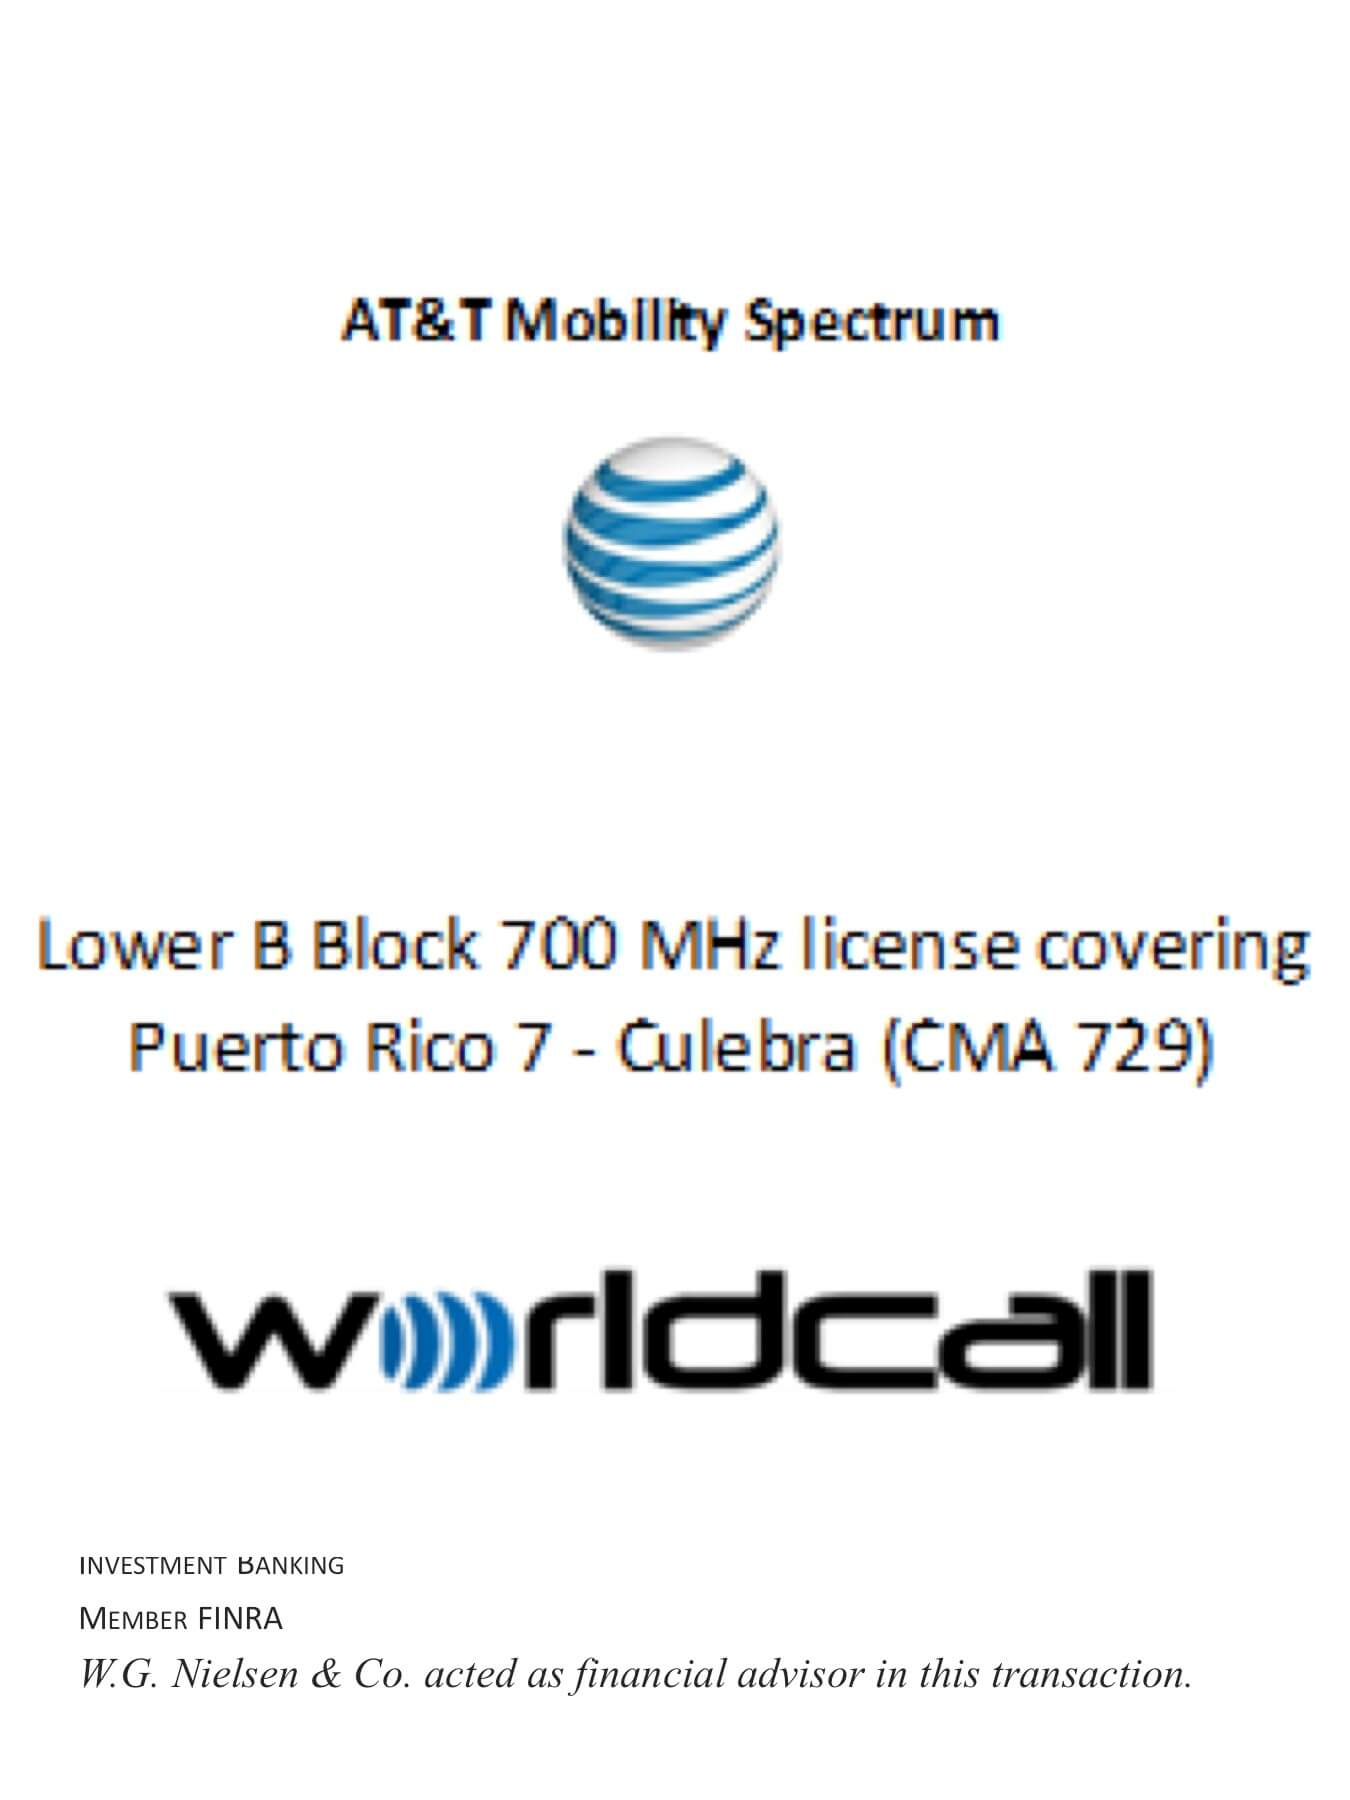 at&t mobility spectrum 6 investment banking transaction